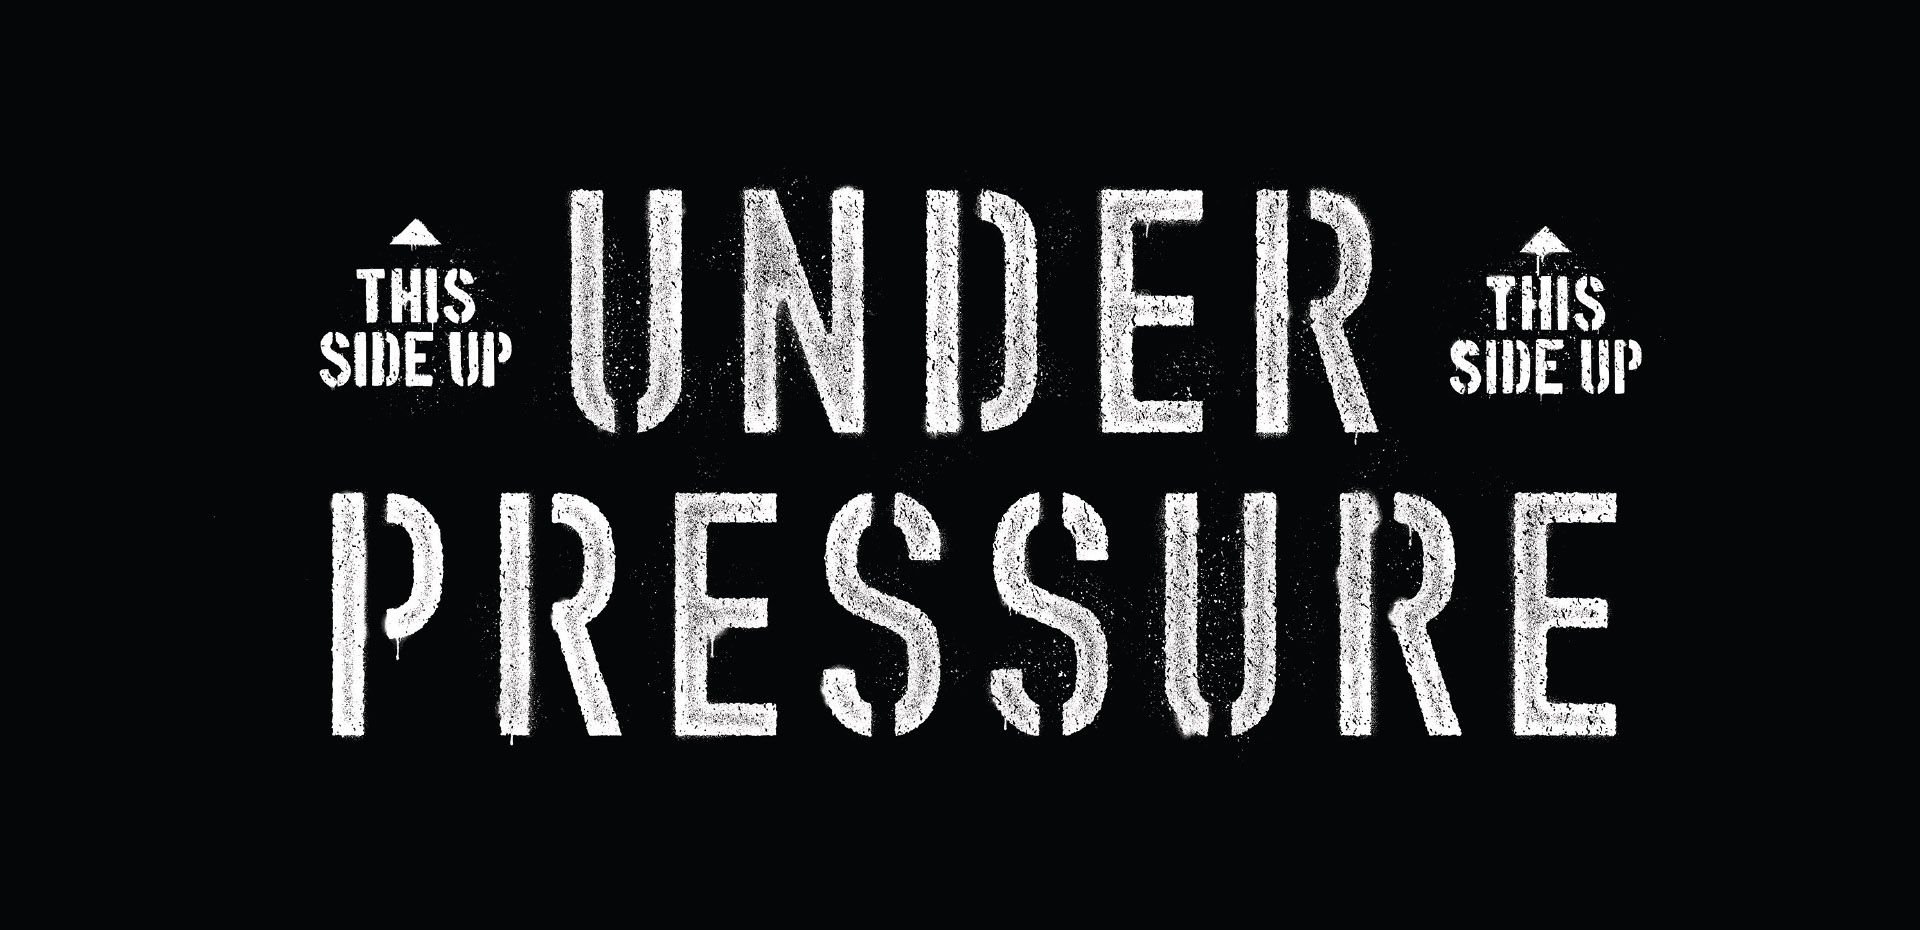 stenciled typography that says 'UNDER PRESSURE'